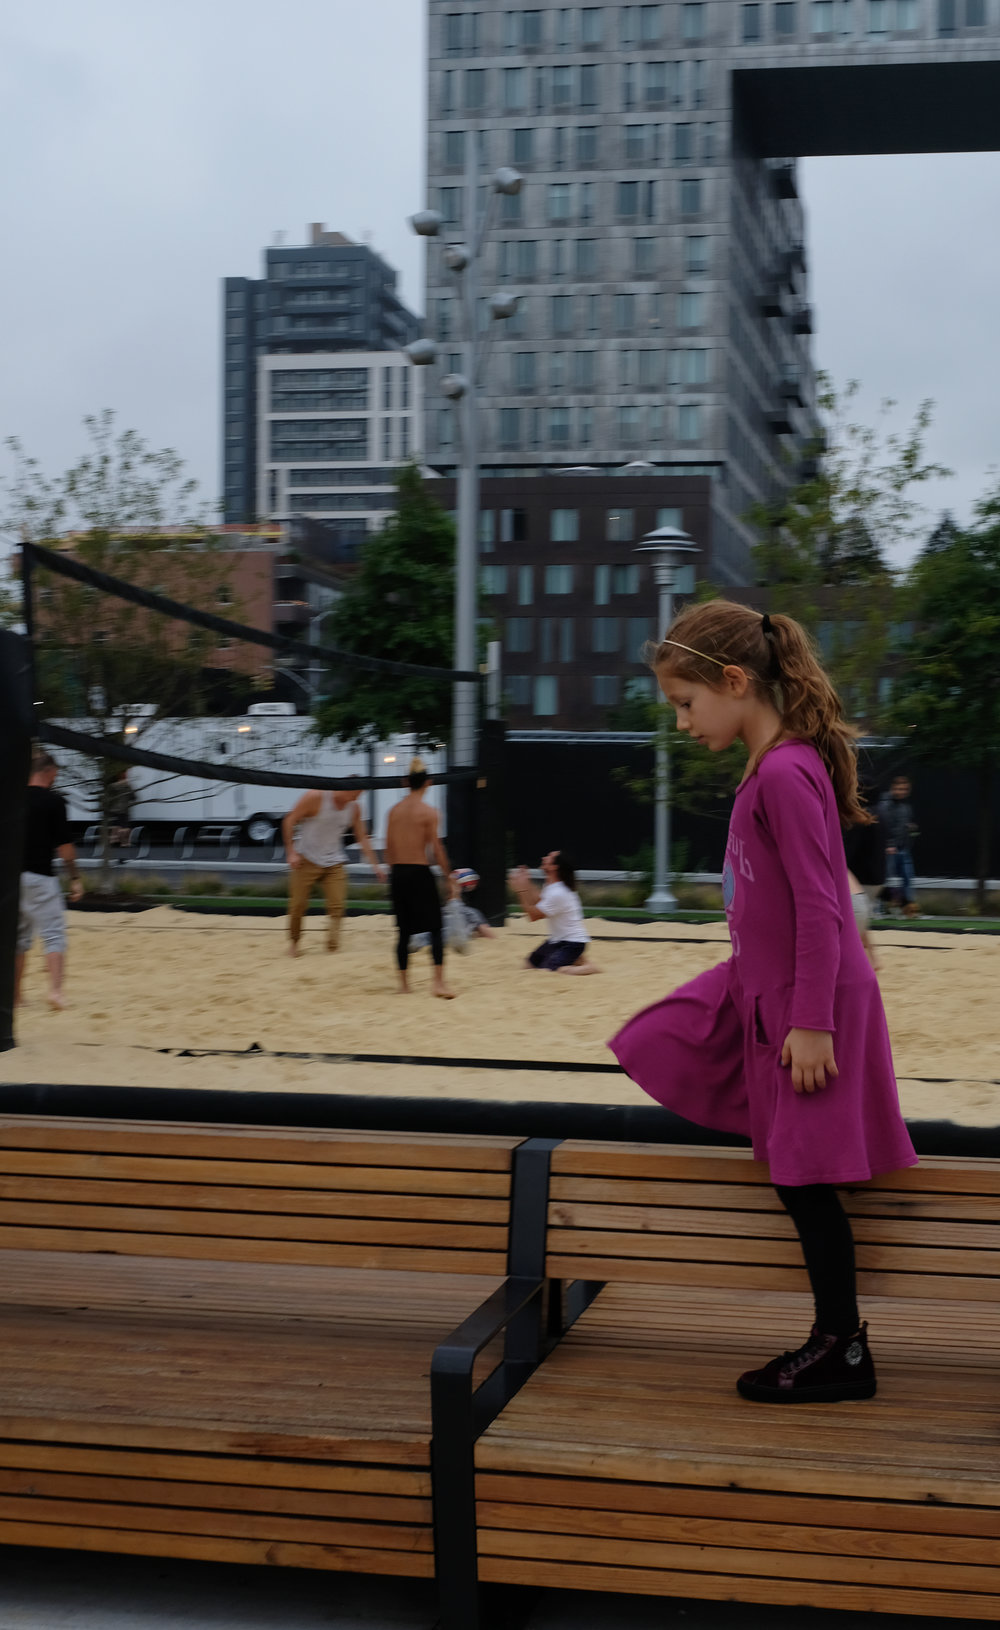 from the ongoing series ' Little New York '.